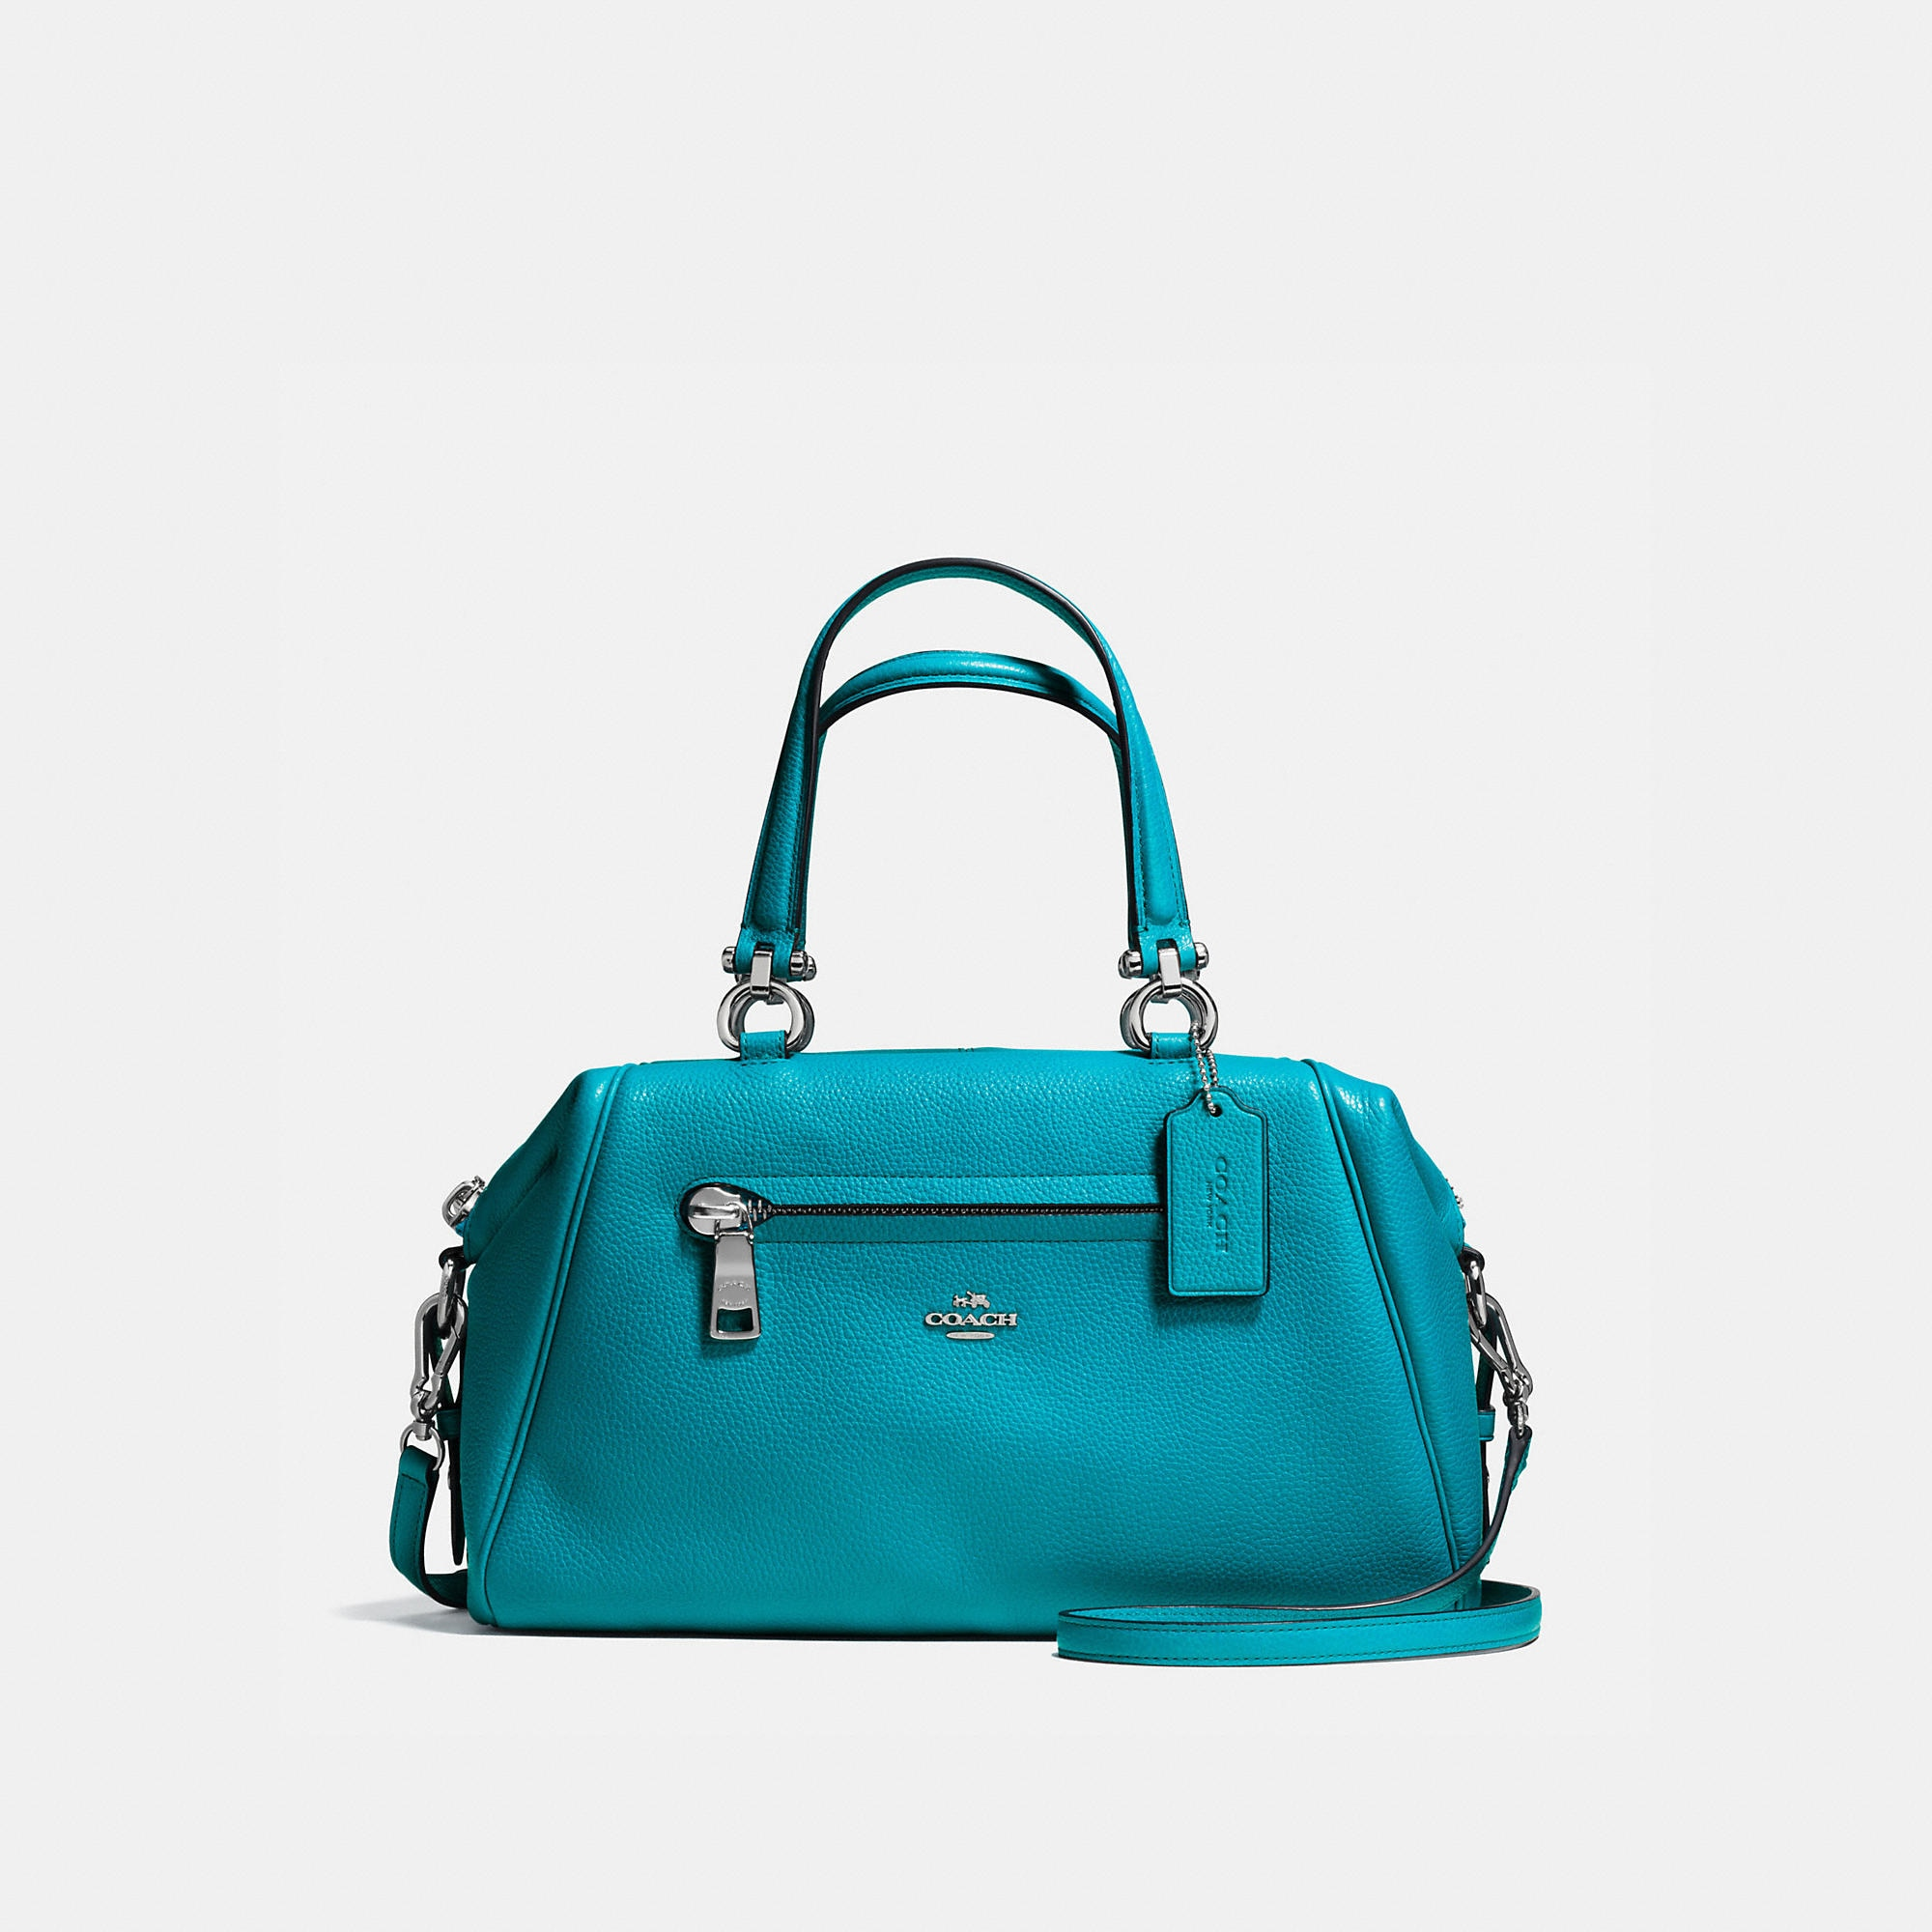 Coach Primrose Satchel In Pebble Leather